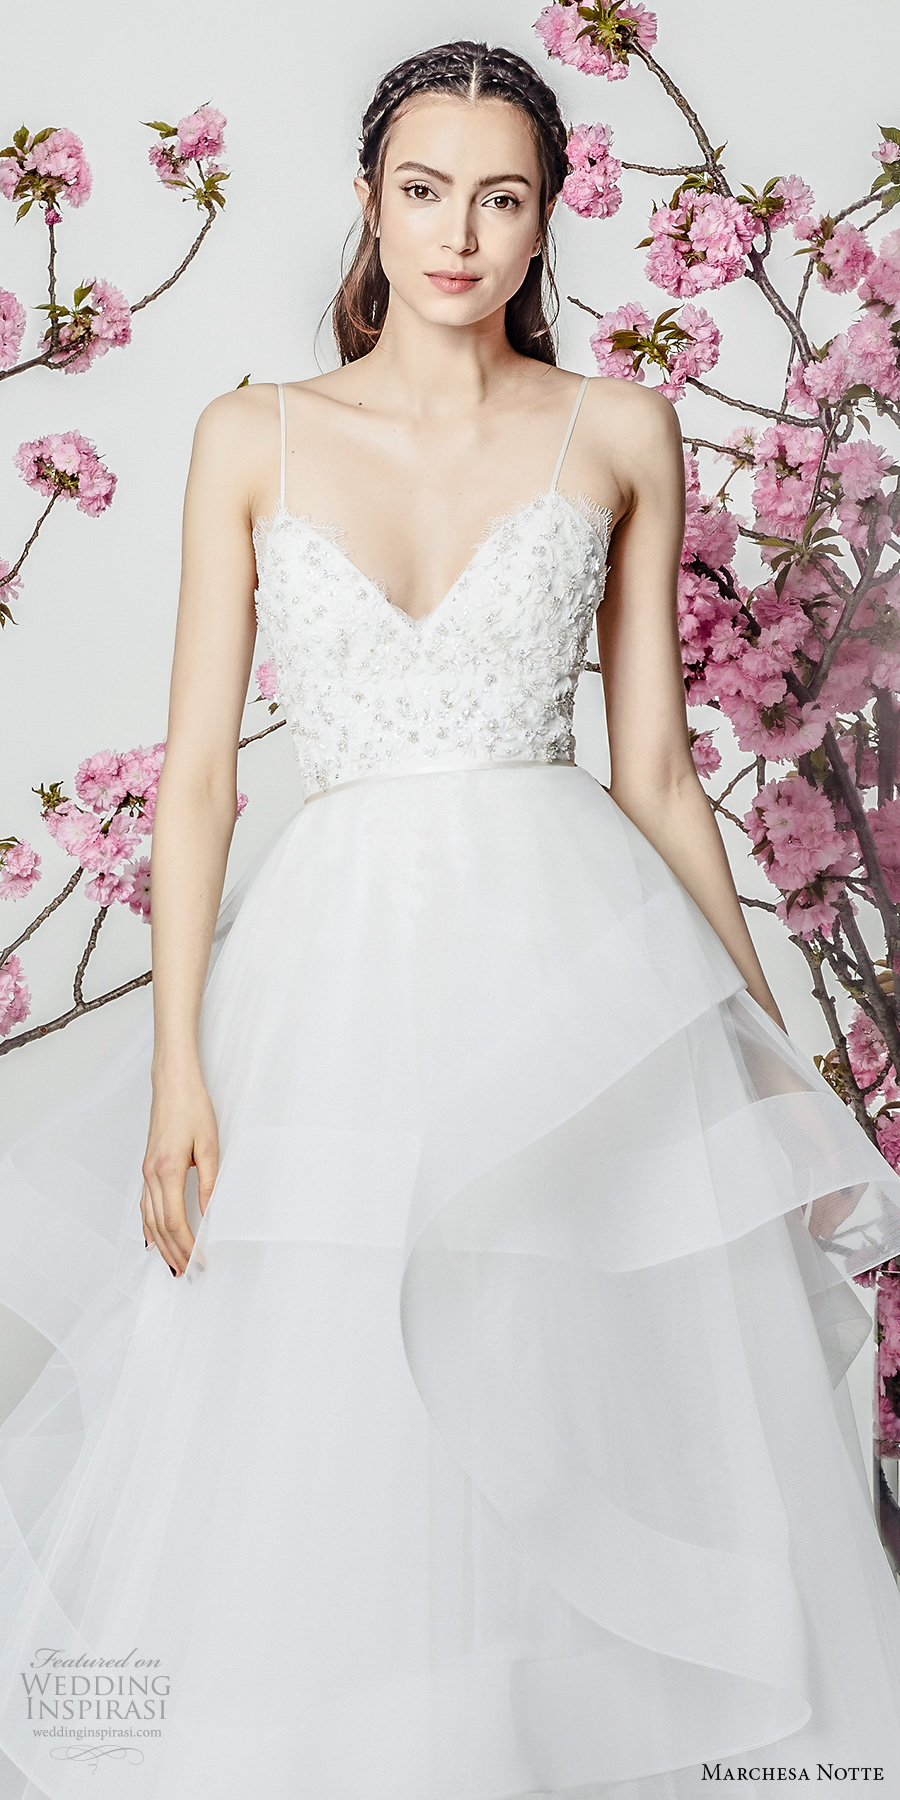 marchesa notte spring 2018 bridal sleeveless spaghetti strap sweetheart neckline heavily embellished bodice layered skirt a line wedding dresschapel train (13) zv